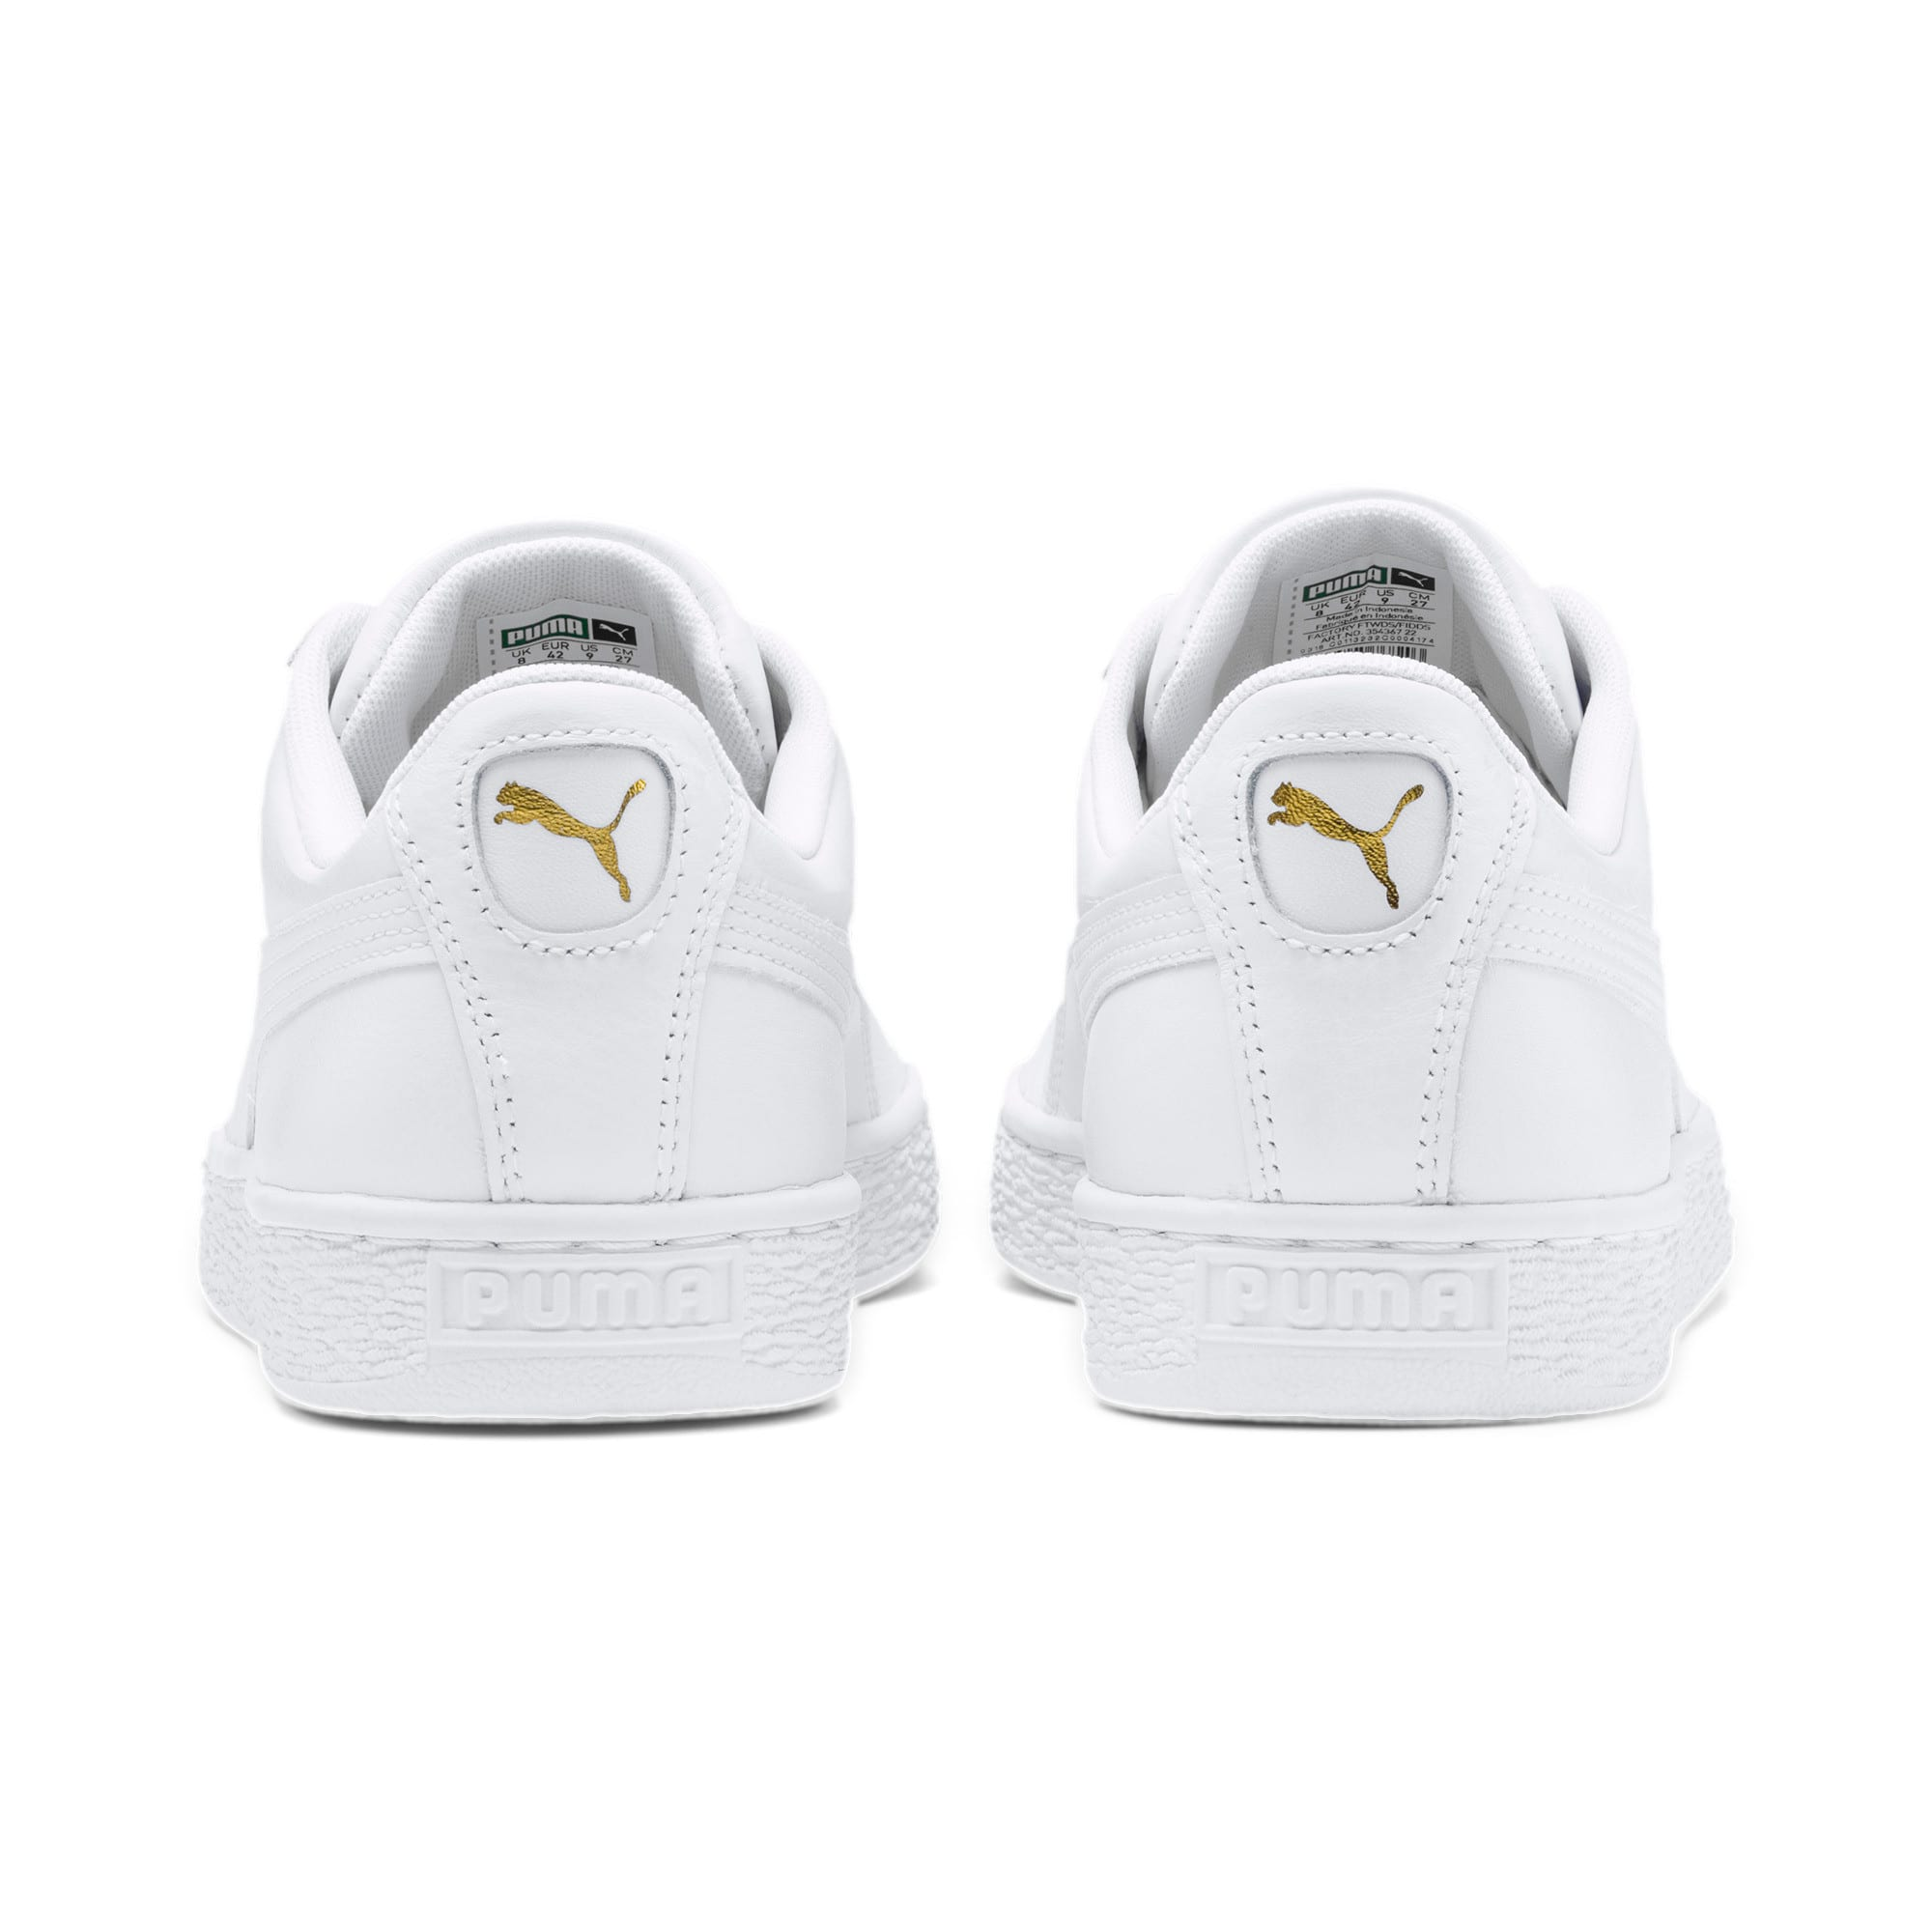 Heritage Basket Classic Sneakers | PUMA US